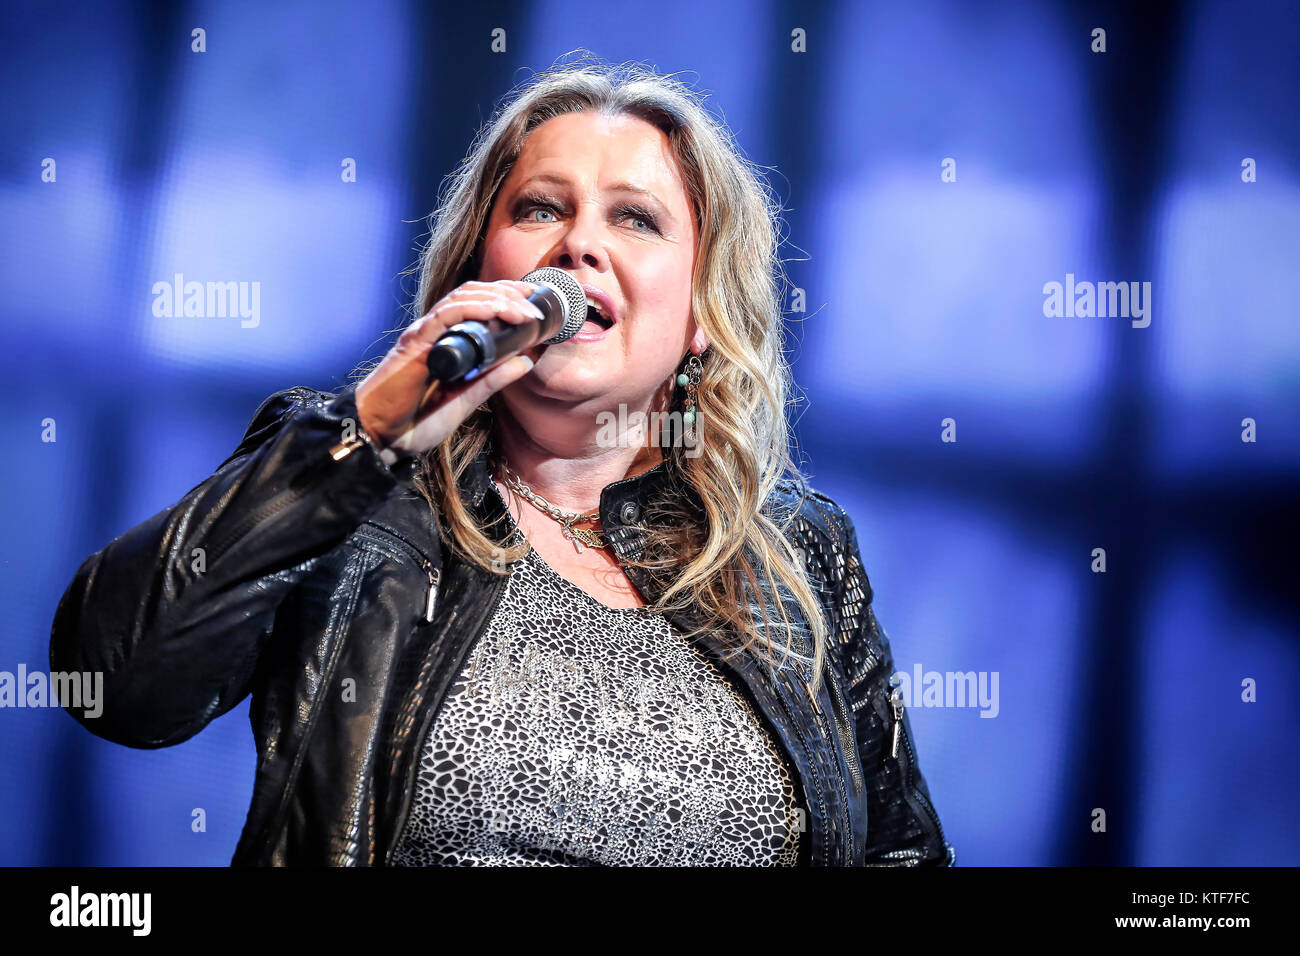 80s music recording stock photos 80s music recording stock images the norwegian singer songwriter and musician anita hegerland performs live at the show we altavistaventures Image collections